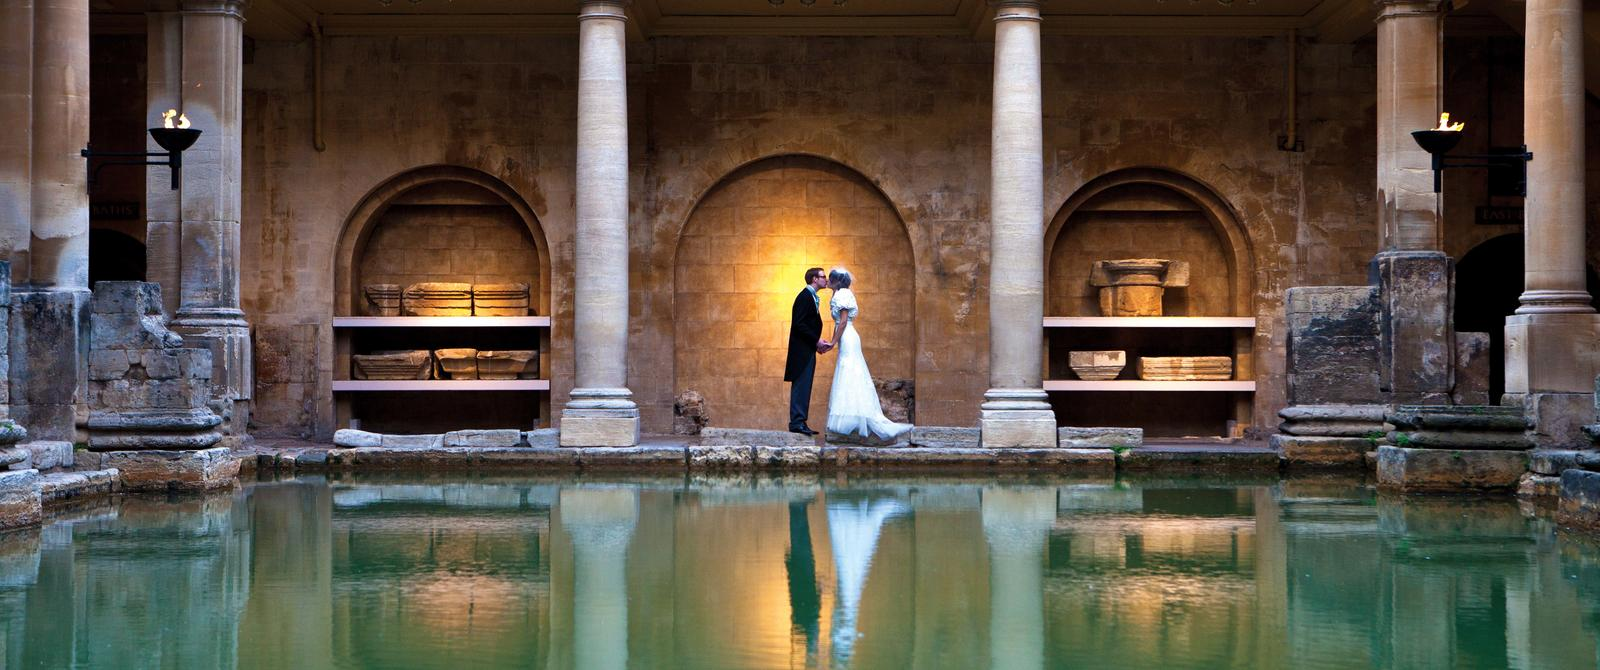 Image: Great Bath Wedding